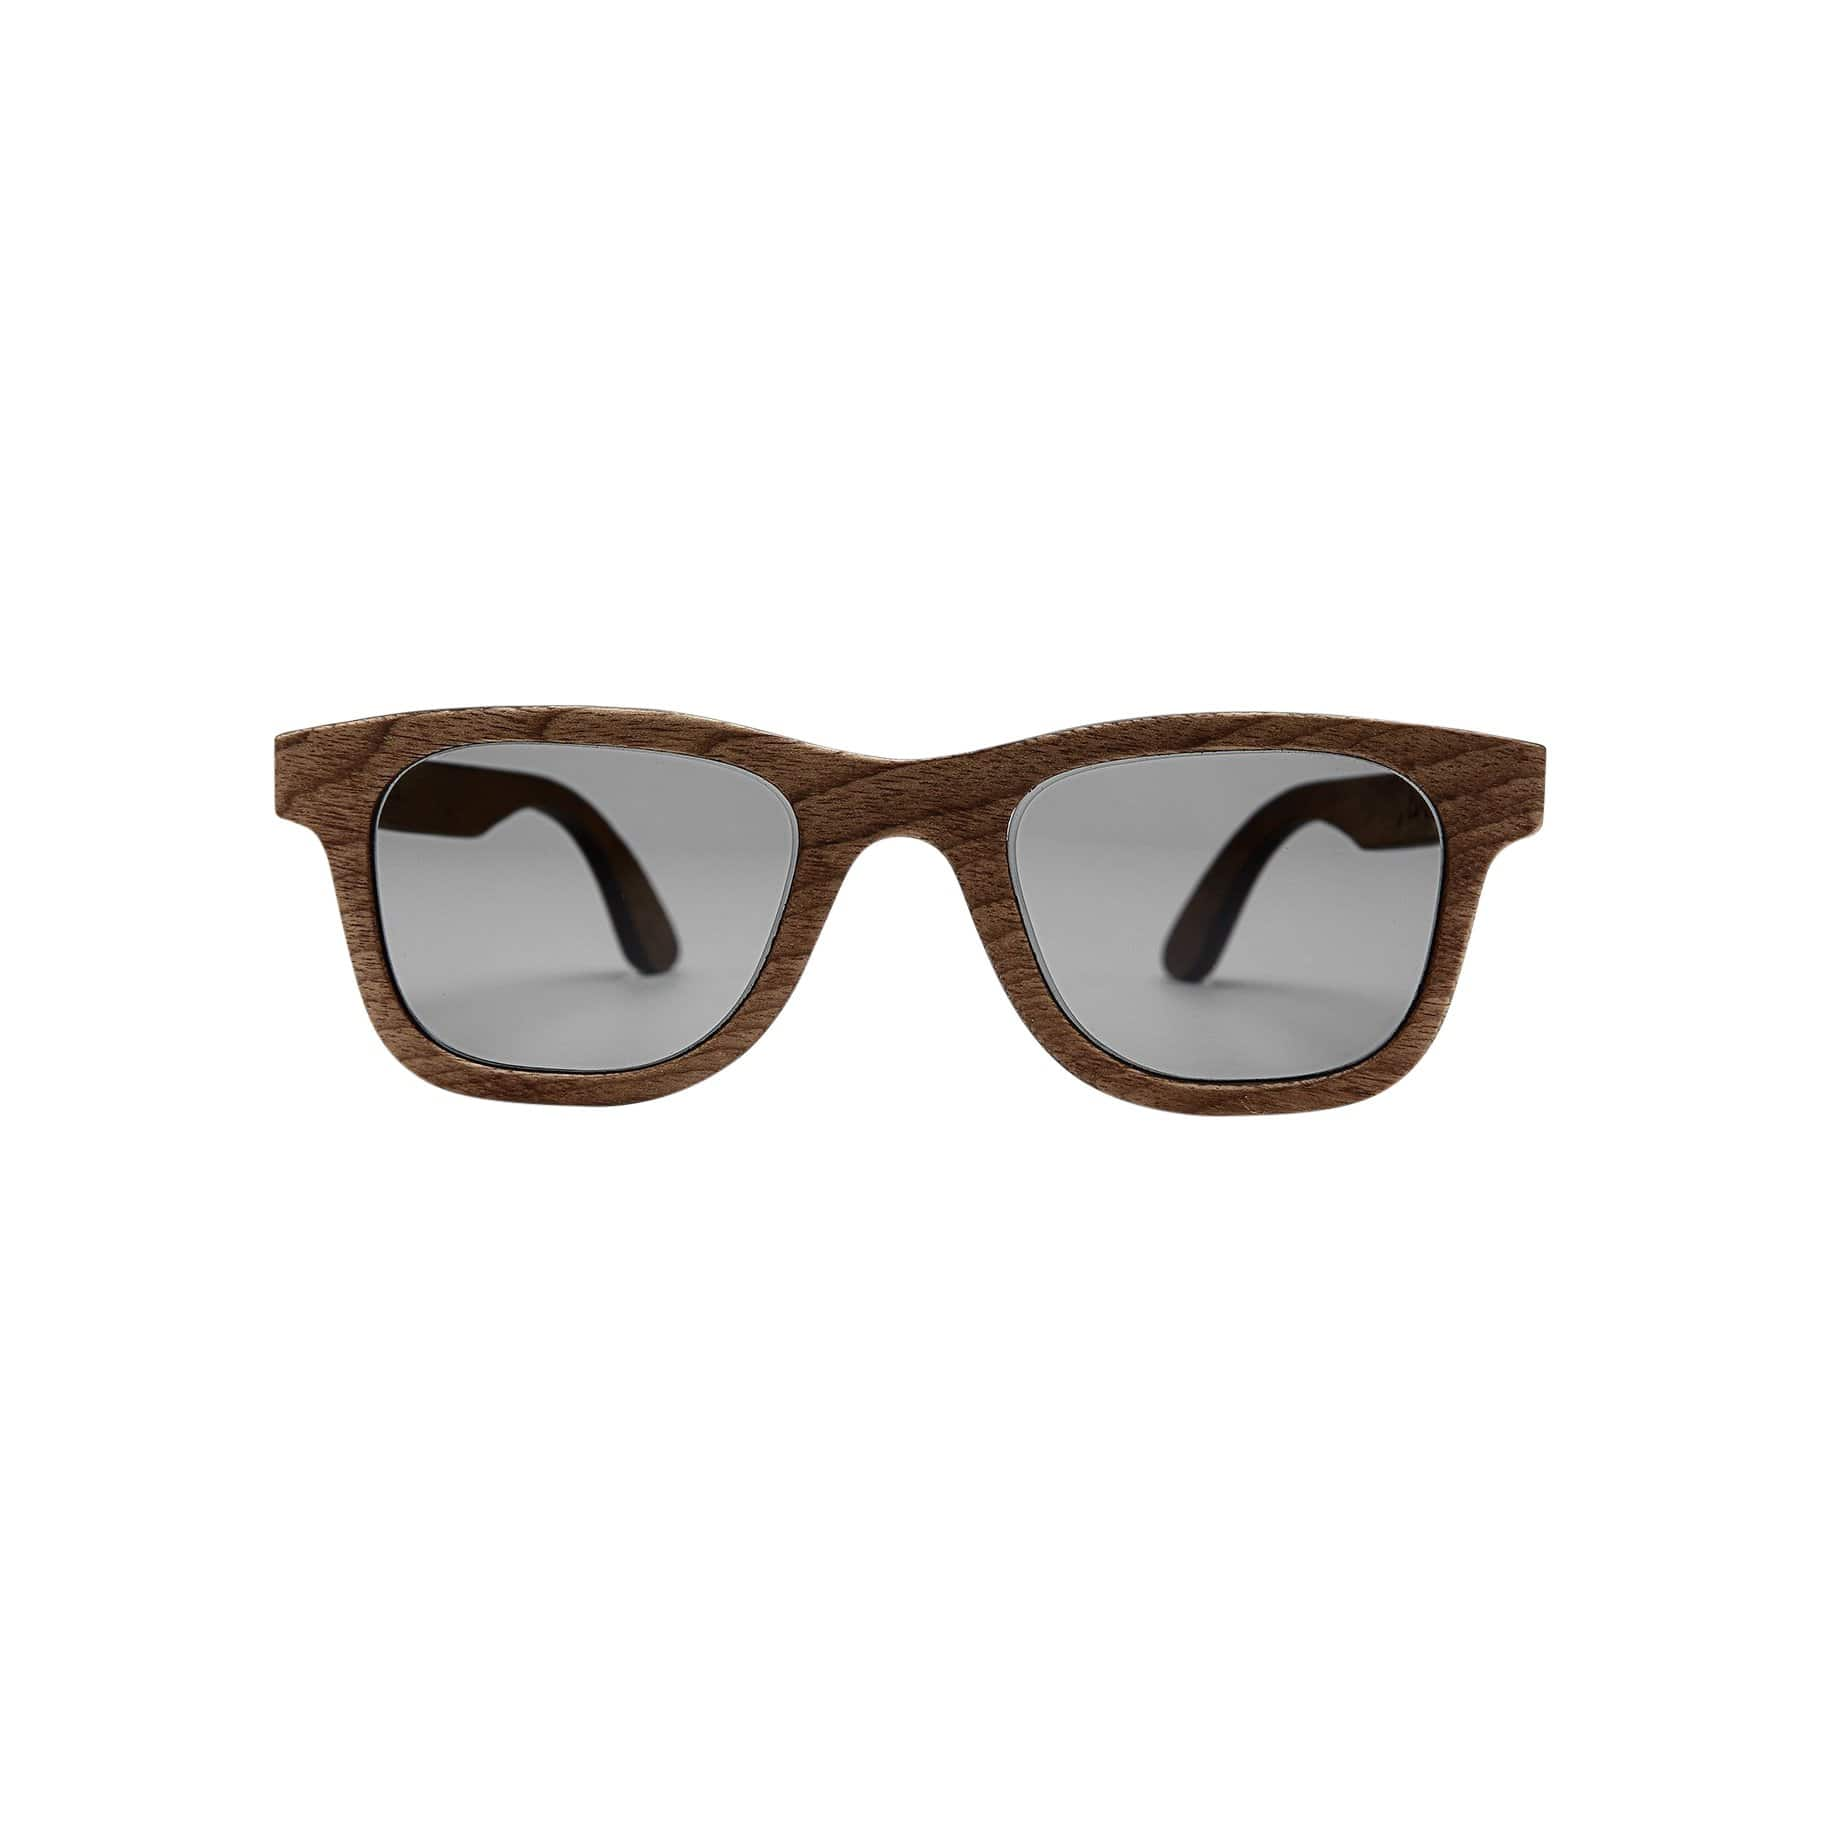 Ballo Sunglasses + Eyewear Barnes with Imbuia Wood